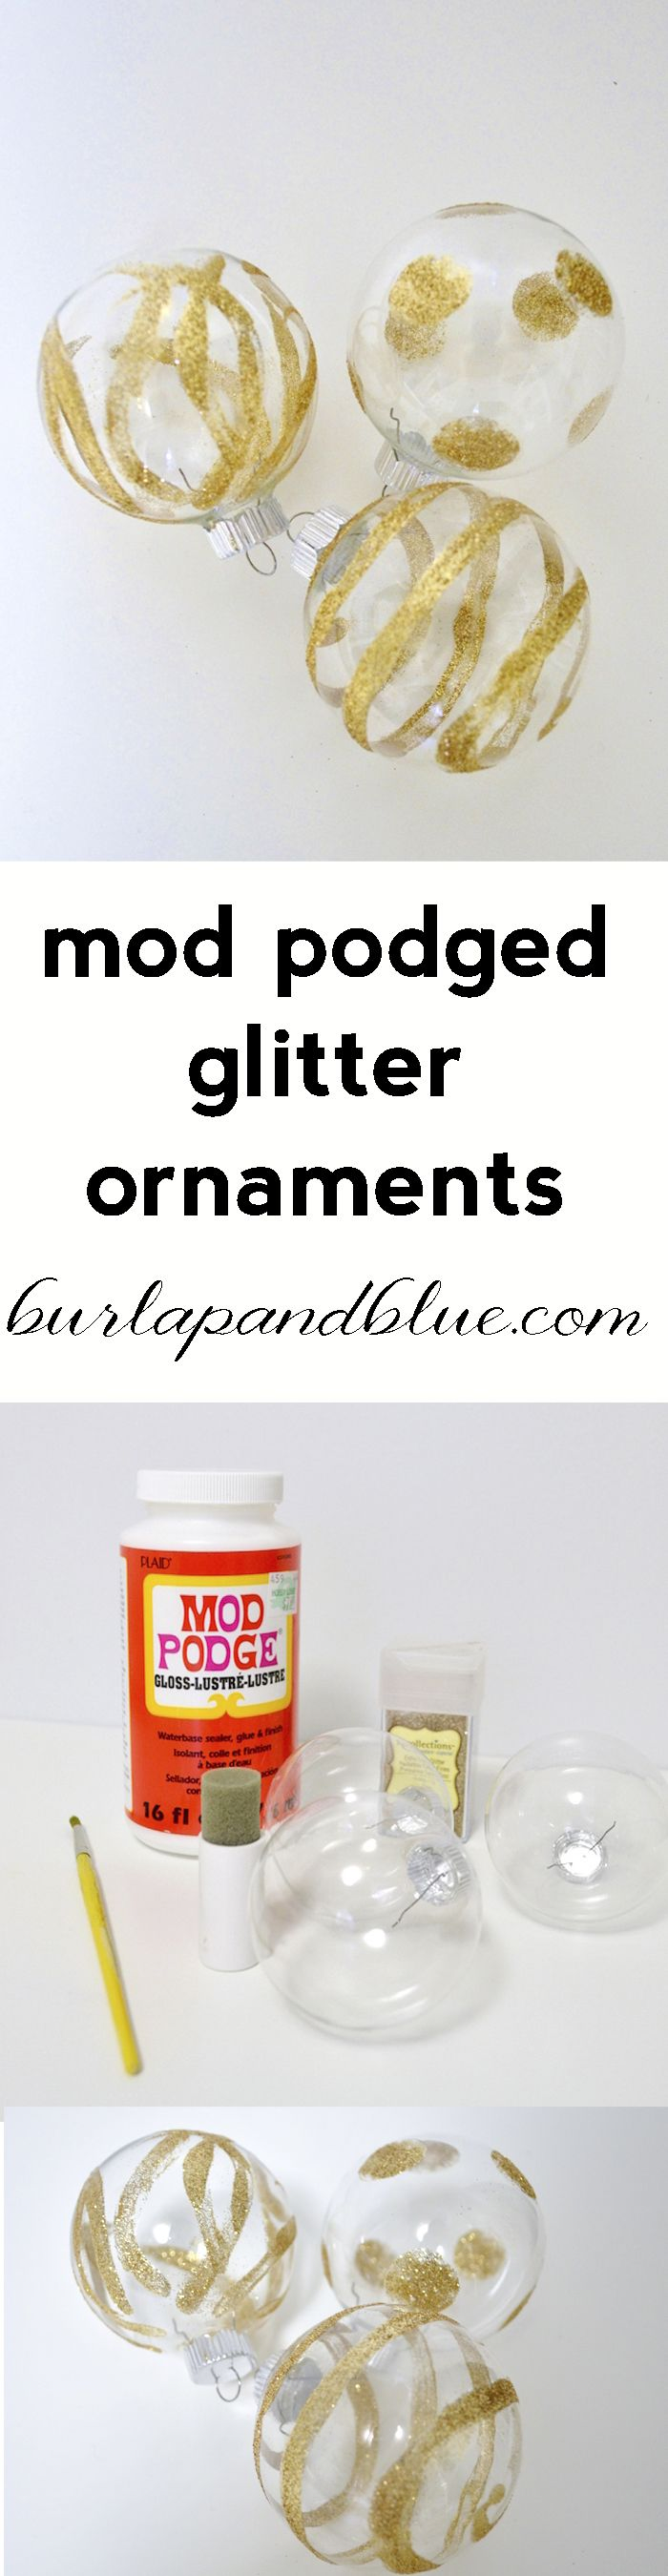 mod podged glitter ornament tutorial Glitter ornaments